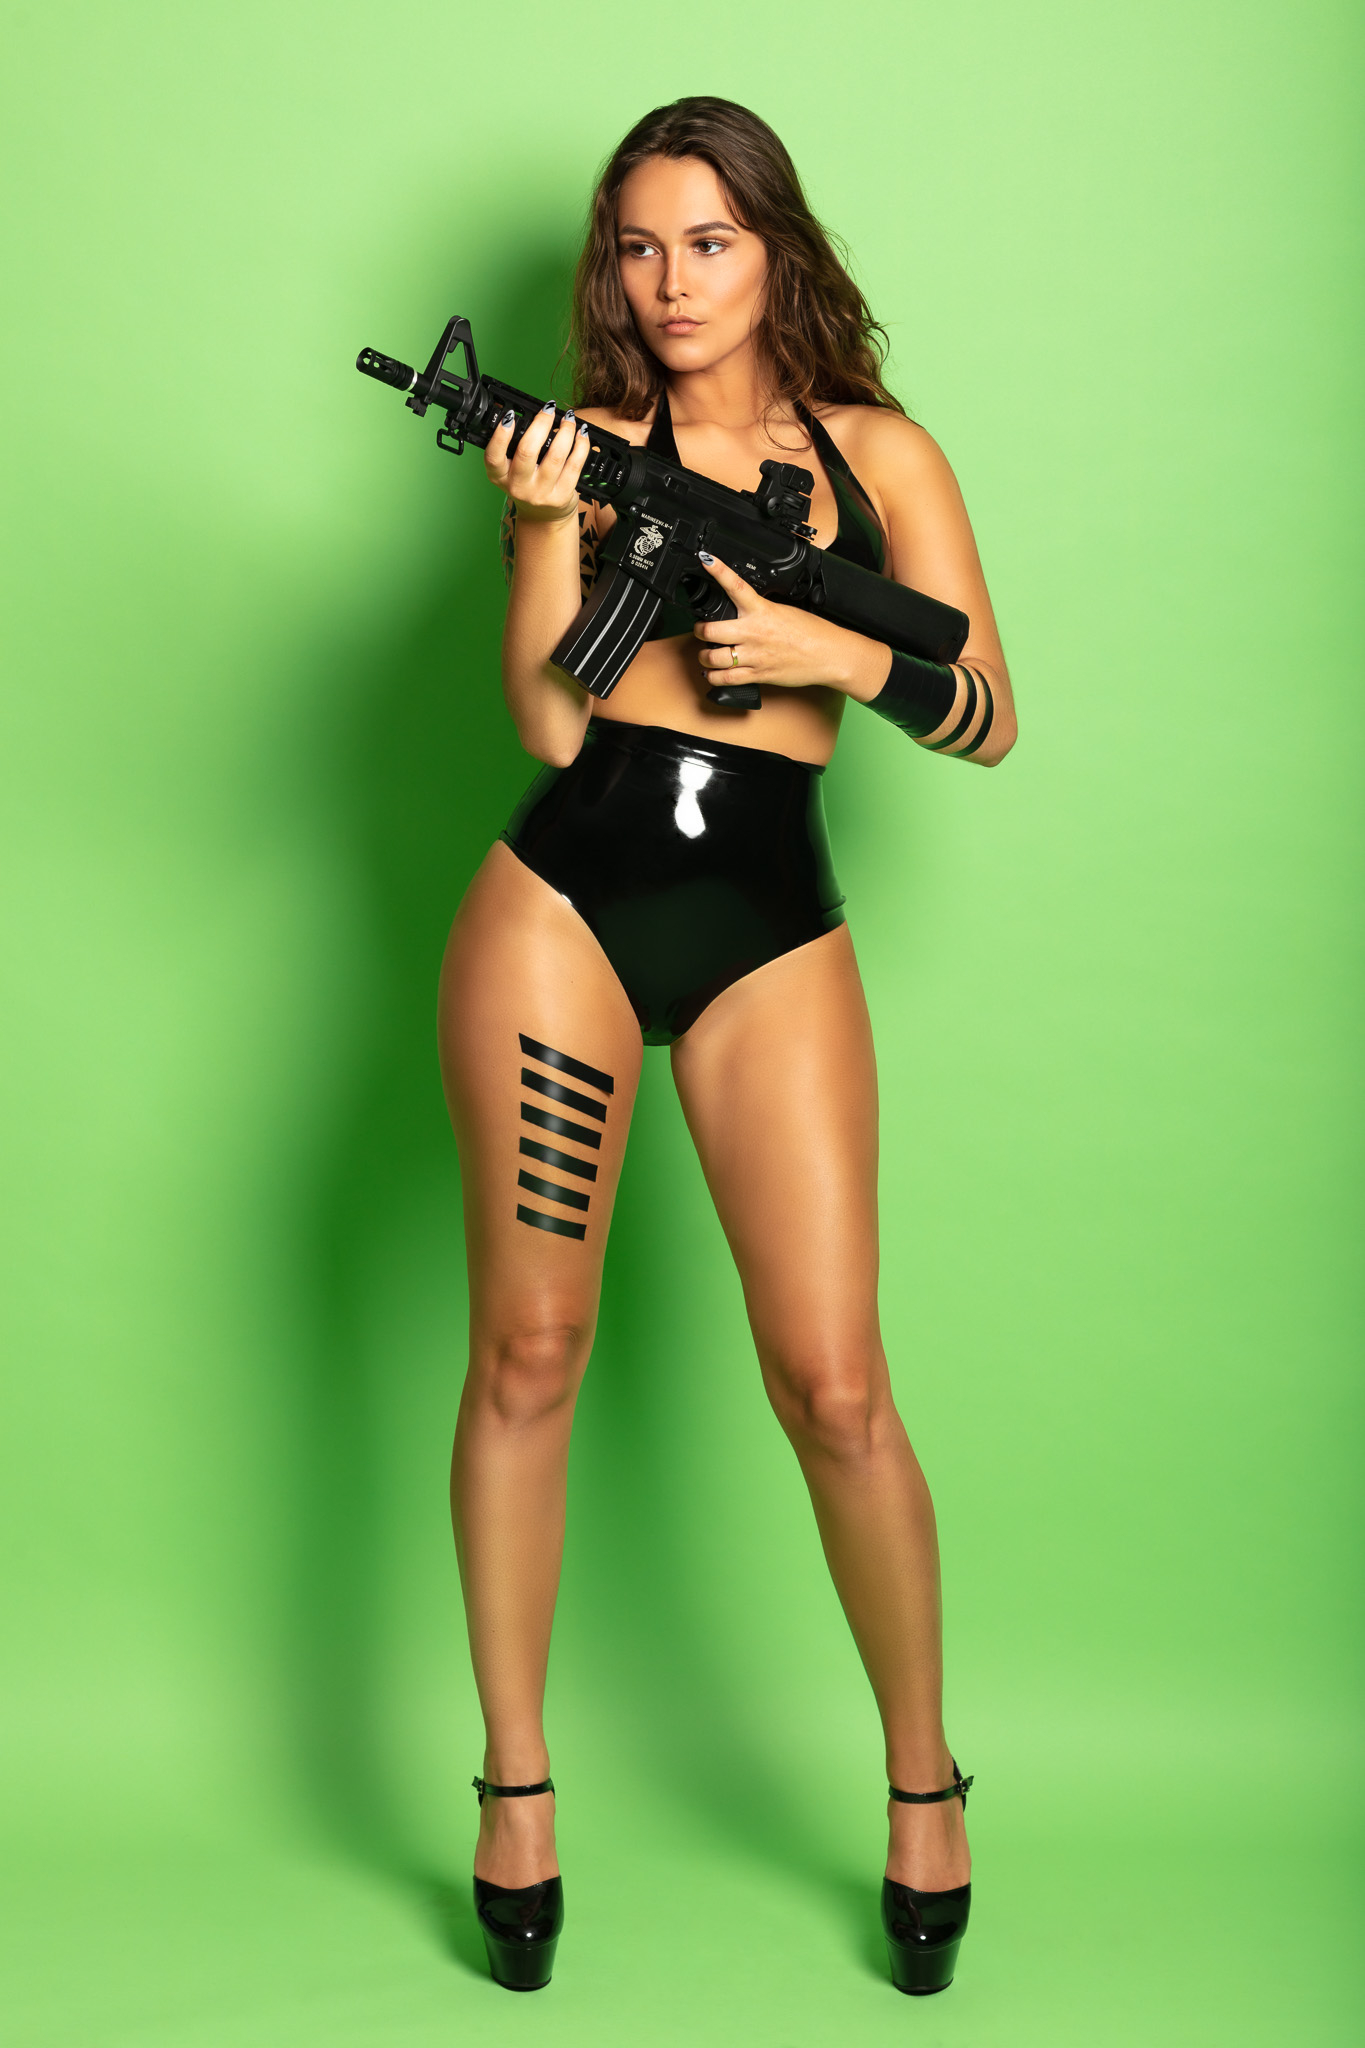 #blacktapeproject with Model Shannety Wearing Latex